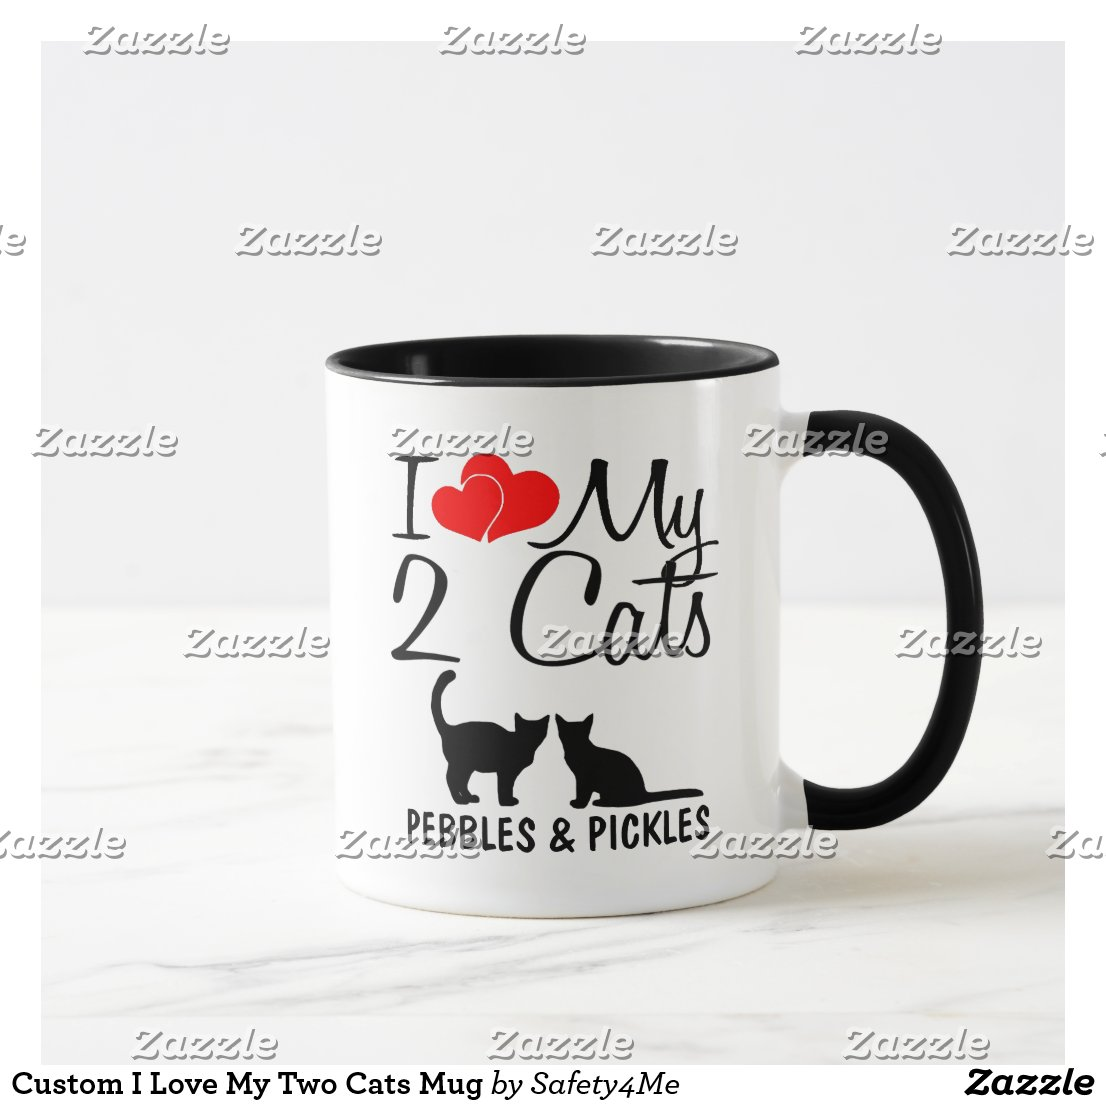 Custom I Love My Two Cats Mug